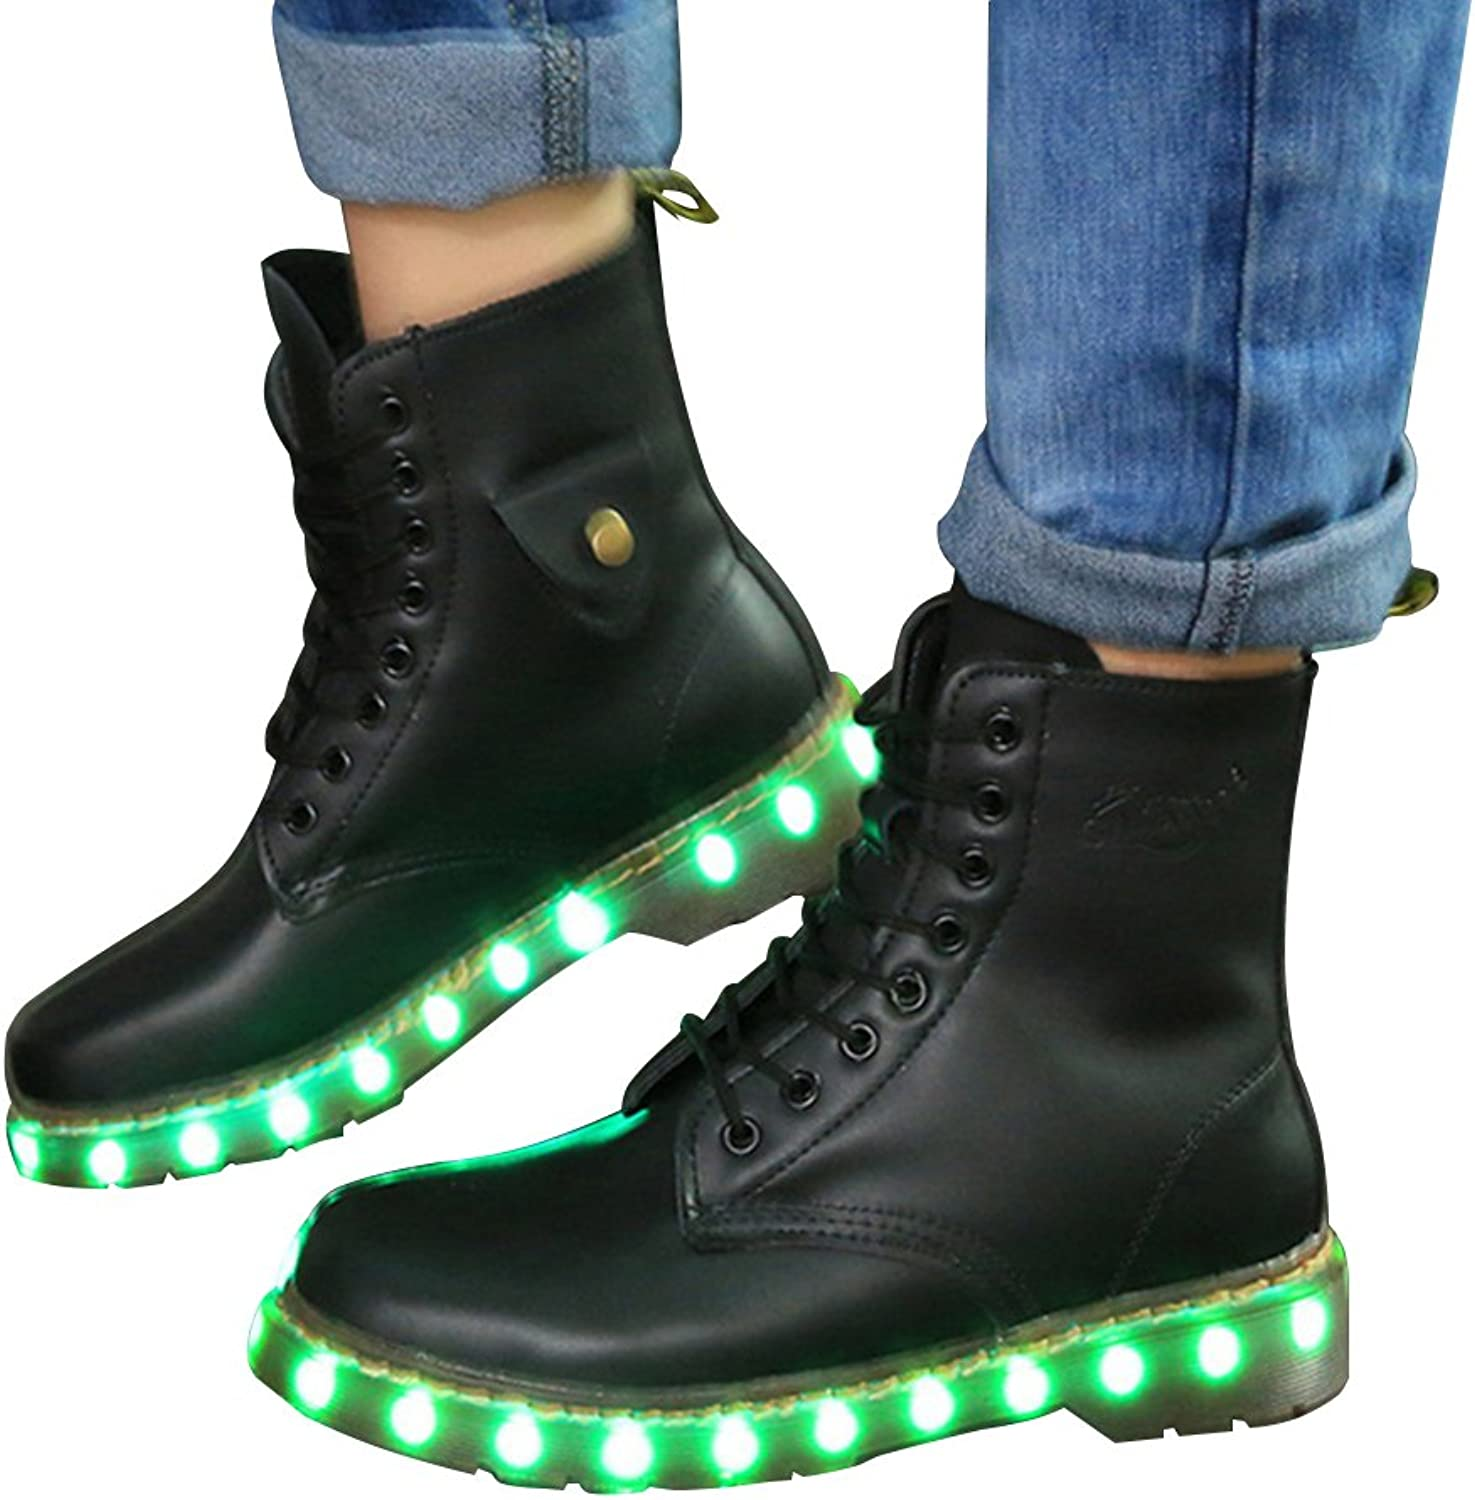 BININBOX Women's Bright LED Marten Boots 7 color Changing Flashing shoes